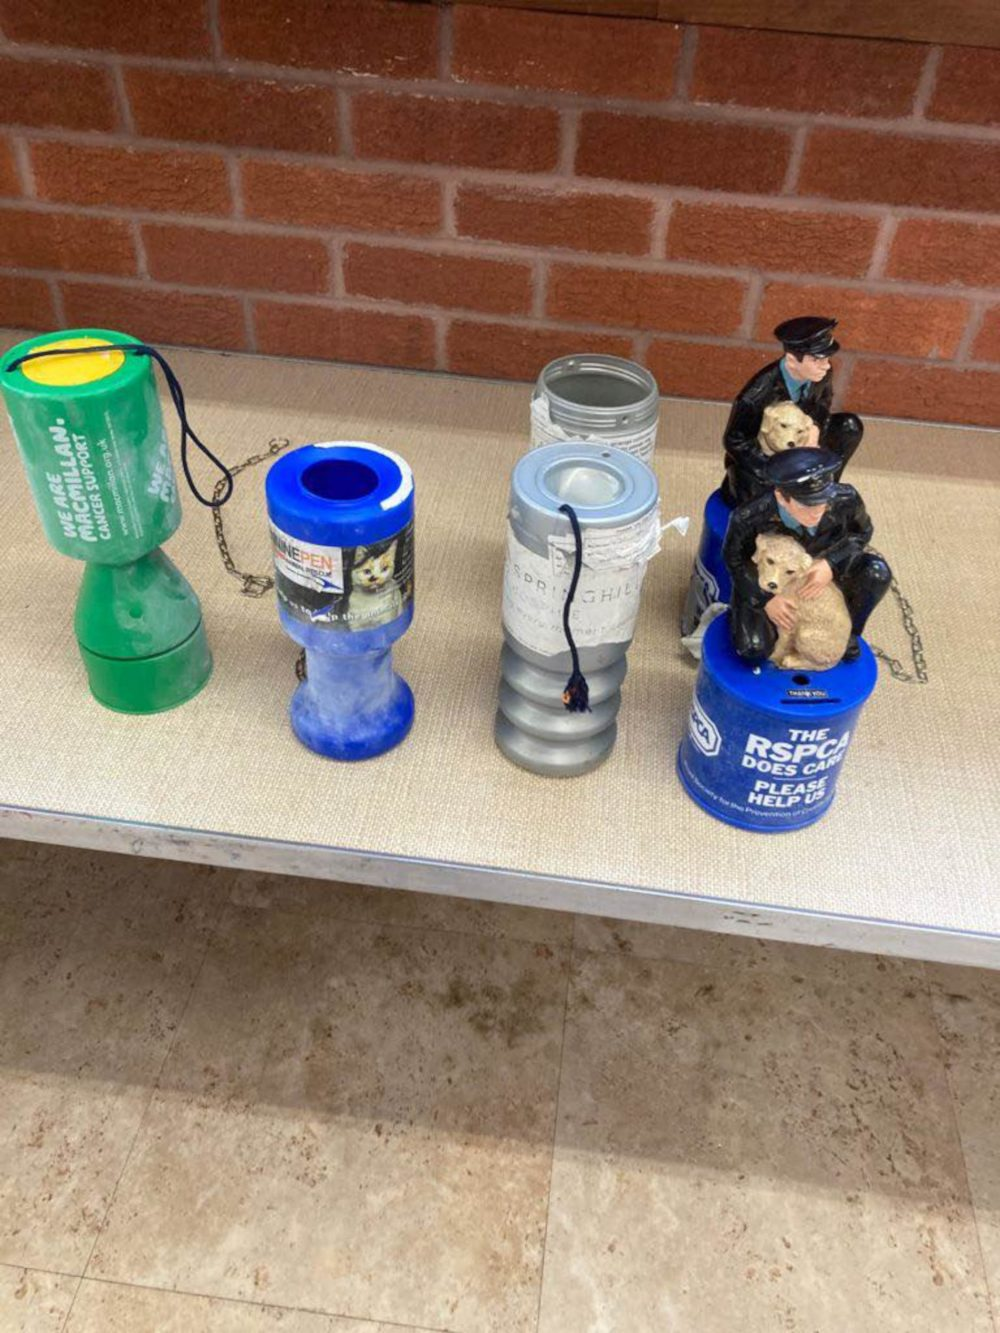 The collection tins were stolen during the break in - Crime News UK